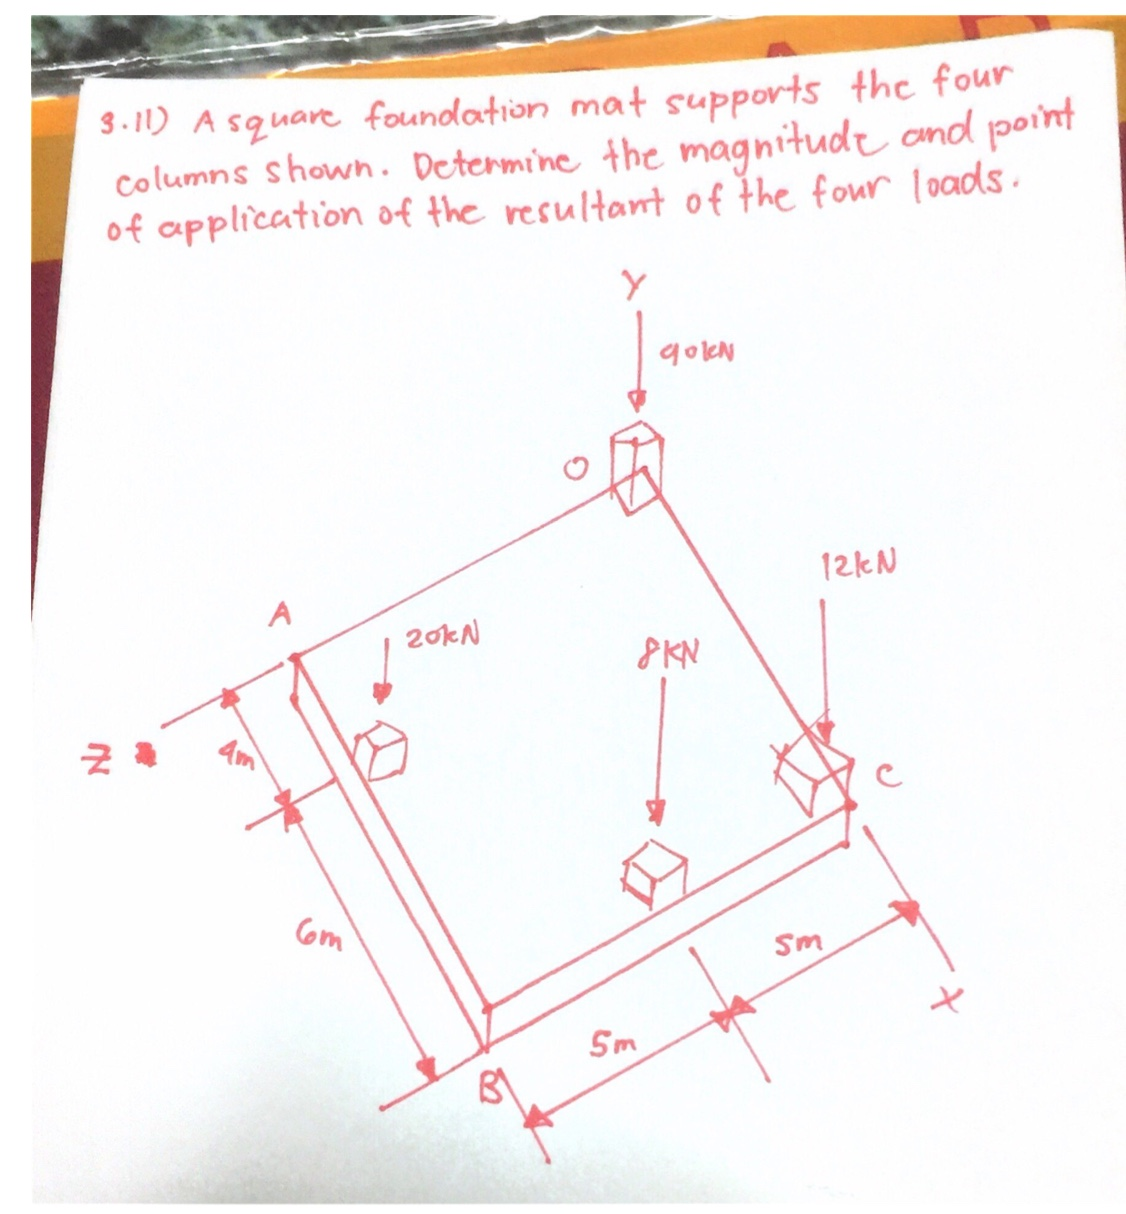 3-11) A squarefoundlation mat supports thc four Columns shown. Determine the magnitudt ond point of application of the resultant of the four loads Y goleh 12KN A 20KN PKN Com Sm Sm